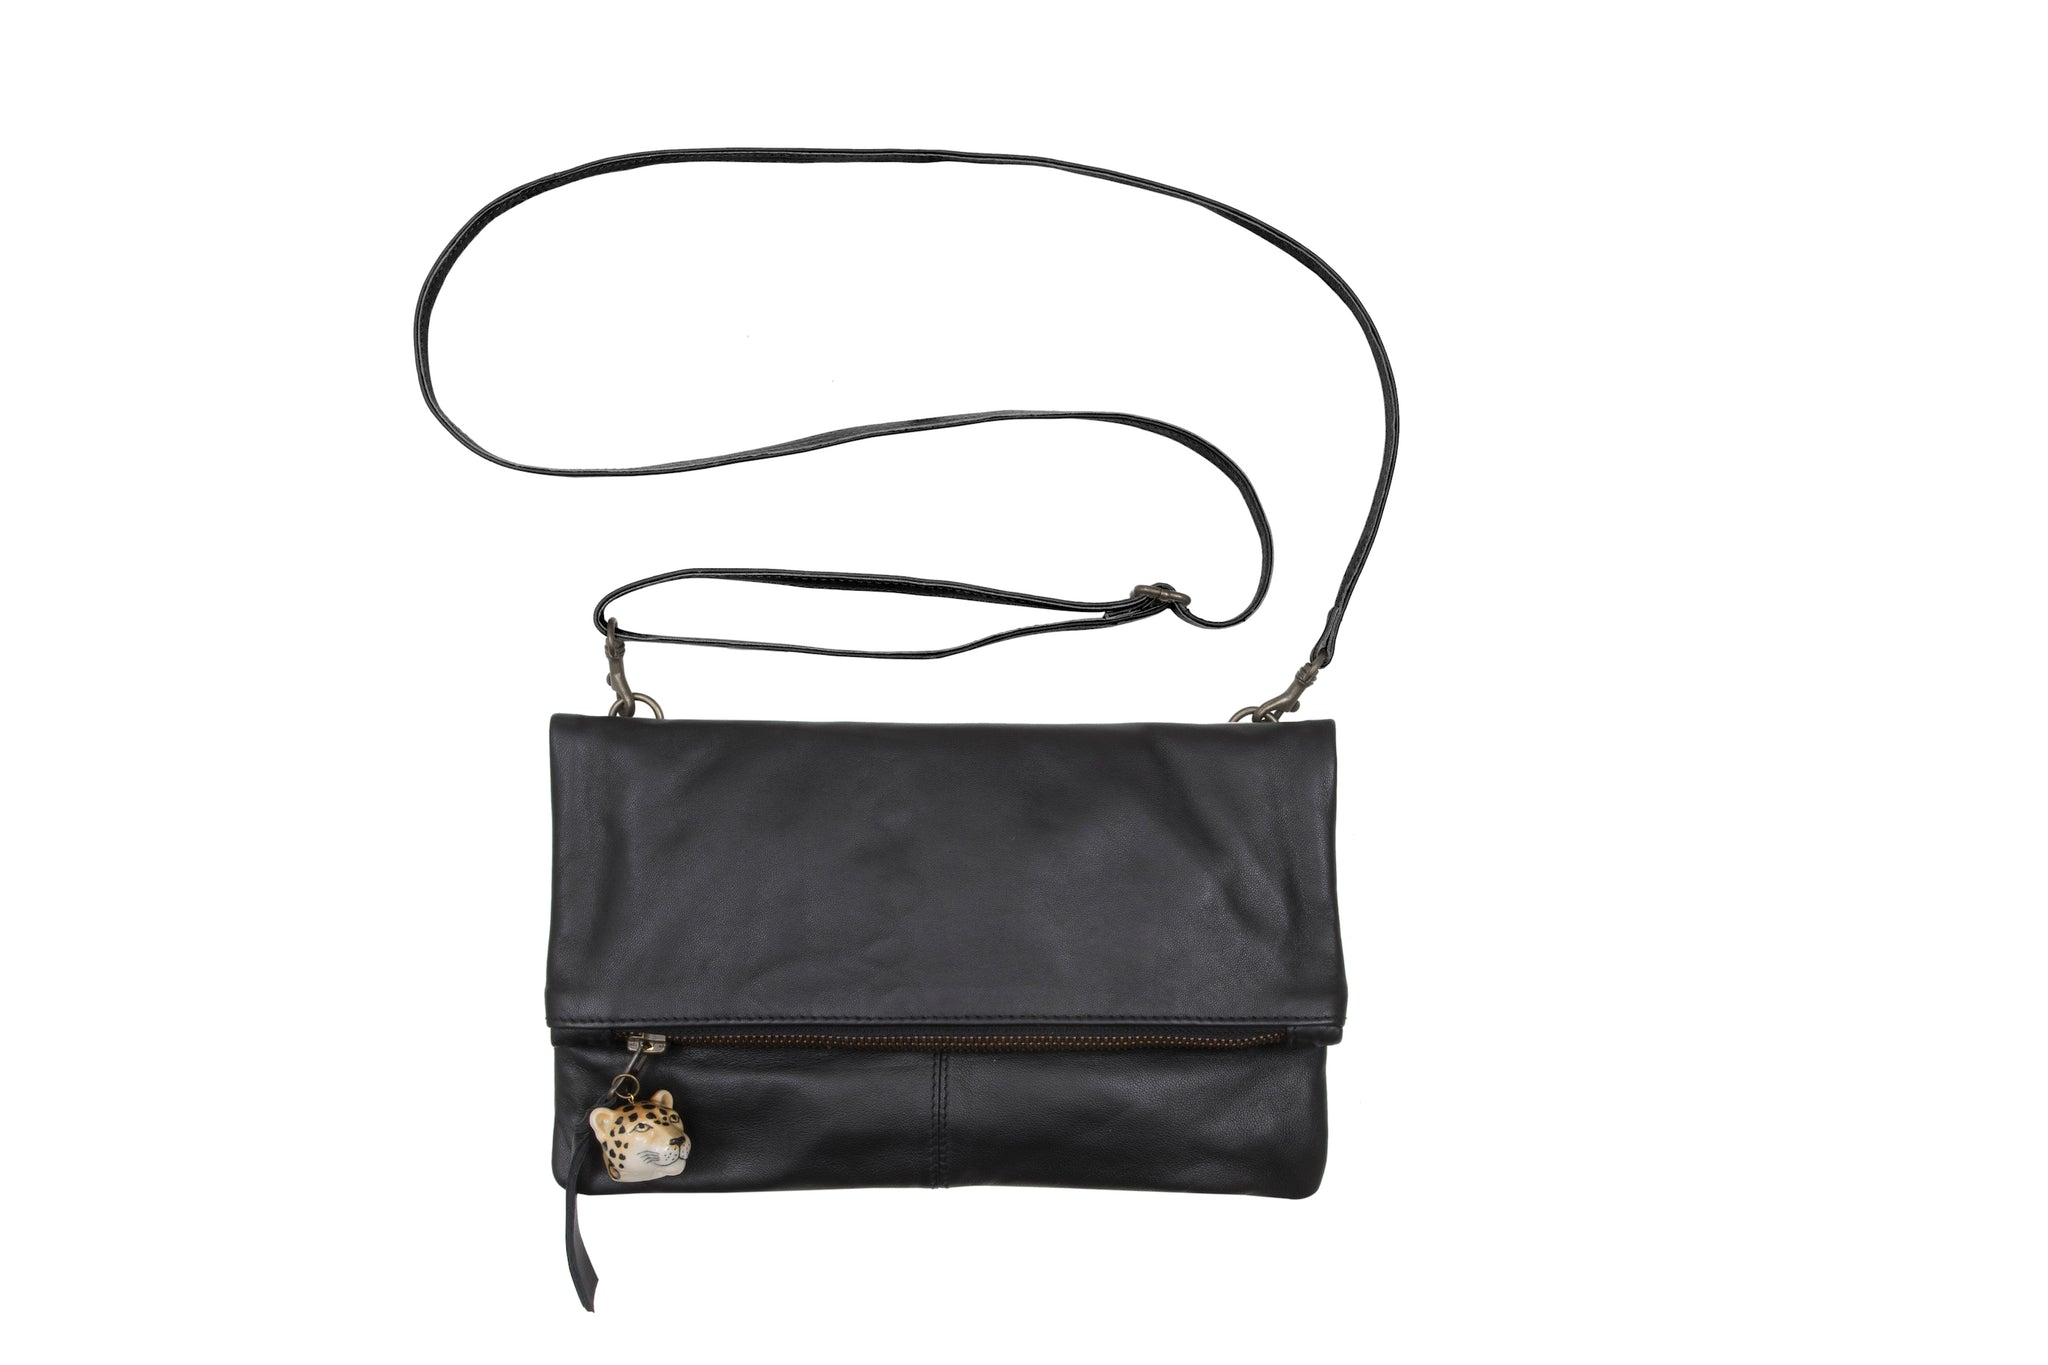 Small Italian Soft Black Leather Foldover Bag with Leopard Head Charm